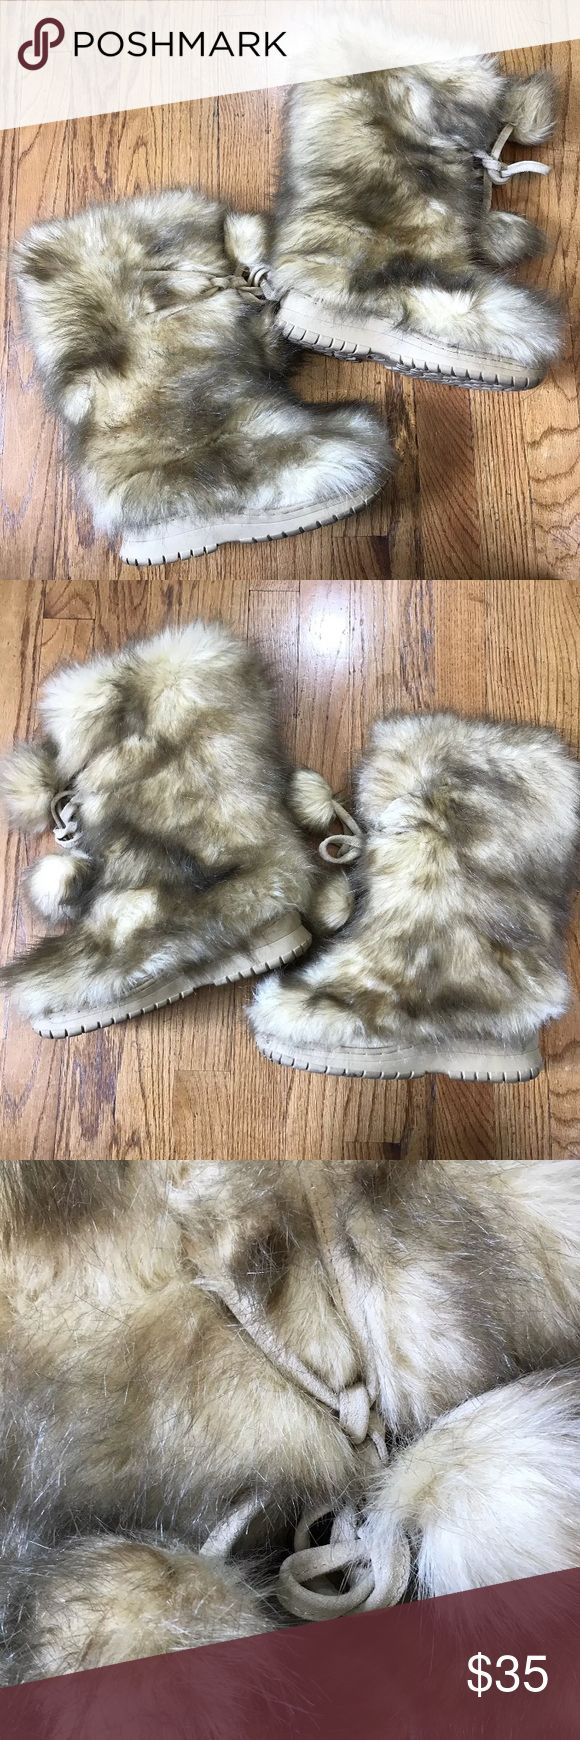 COLIN STUART Tan Faux Fur BOOTS Women's Size 8 Size 8 women's. Used, see photos! Perfect for any collection! Colin Stuart Shoes Winter & Rain Boots